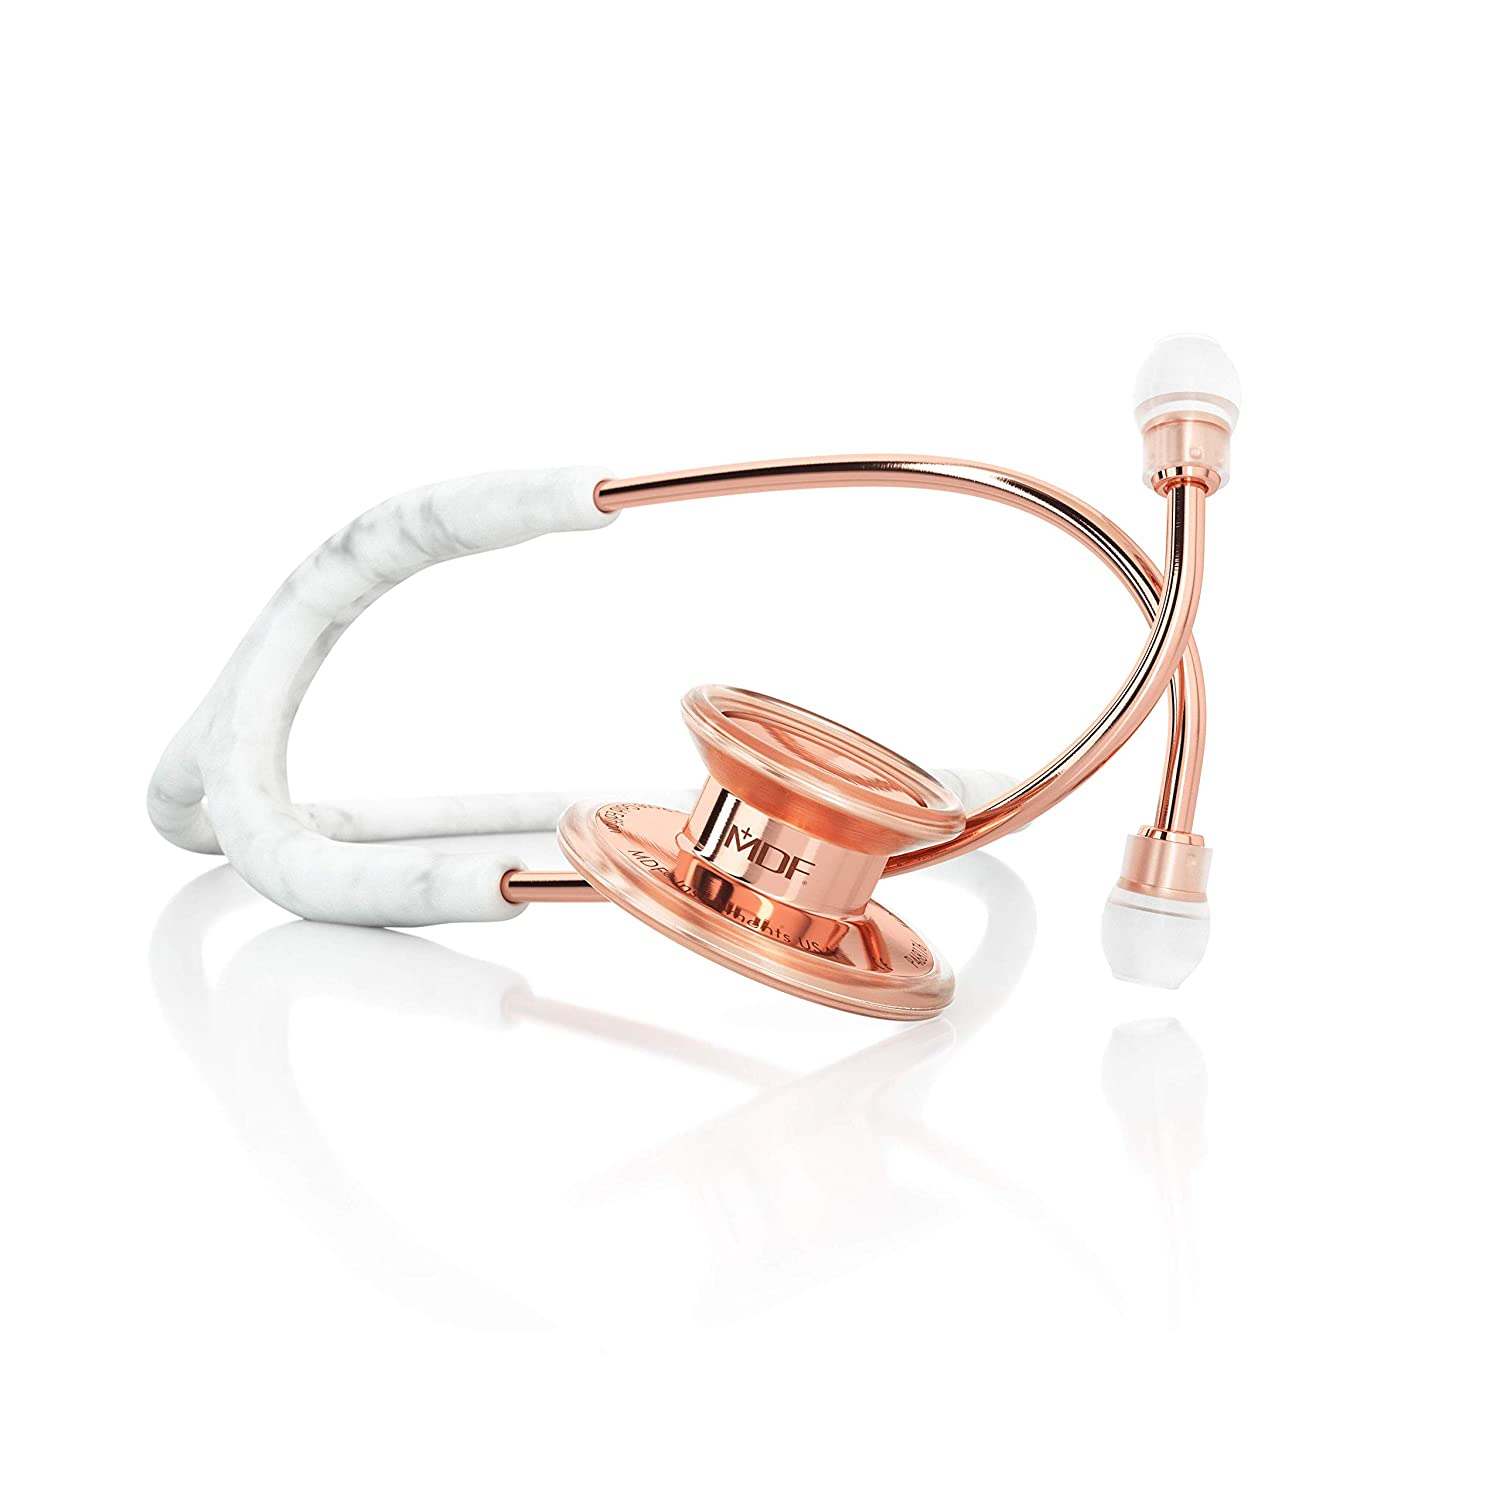 MDF MD One Marble Rose Gold Stethoscope – Limited Edition – Free-Parts-for-Life Lifetime Warranty – Marble Rose Gold MDF777-MBRG